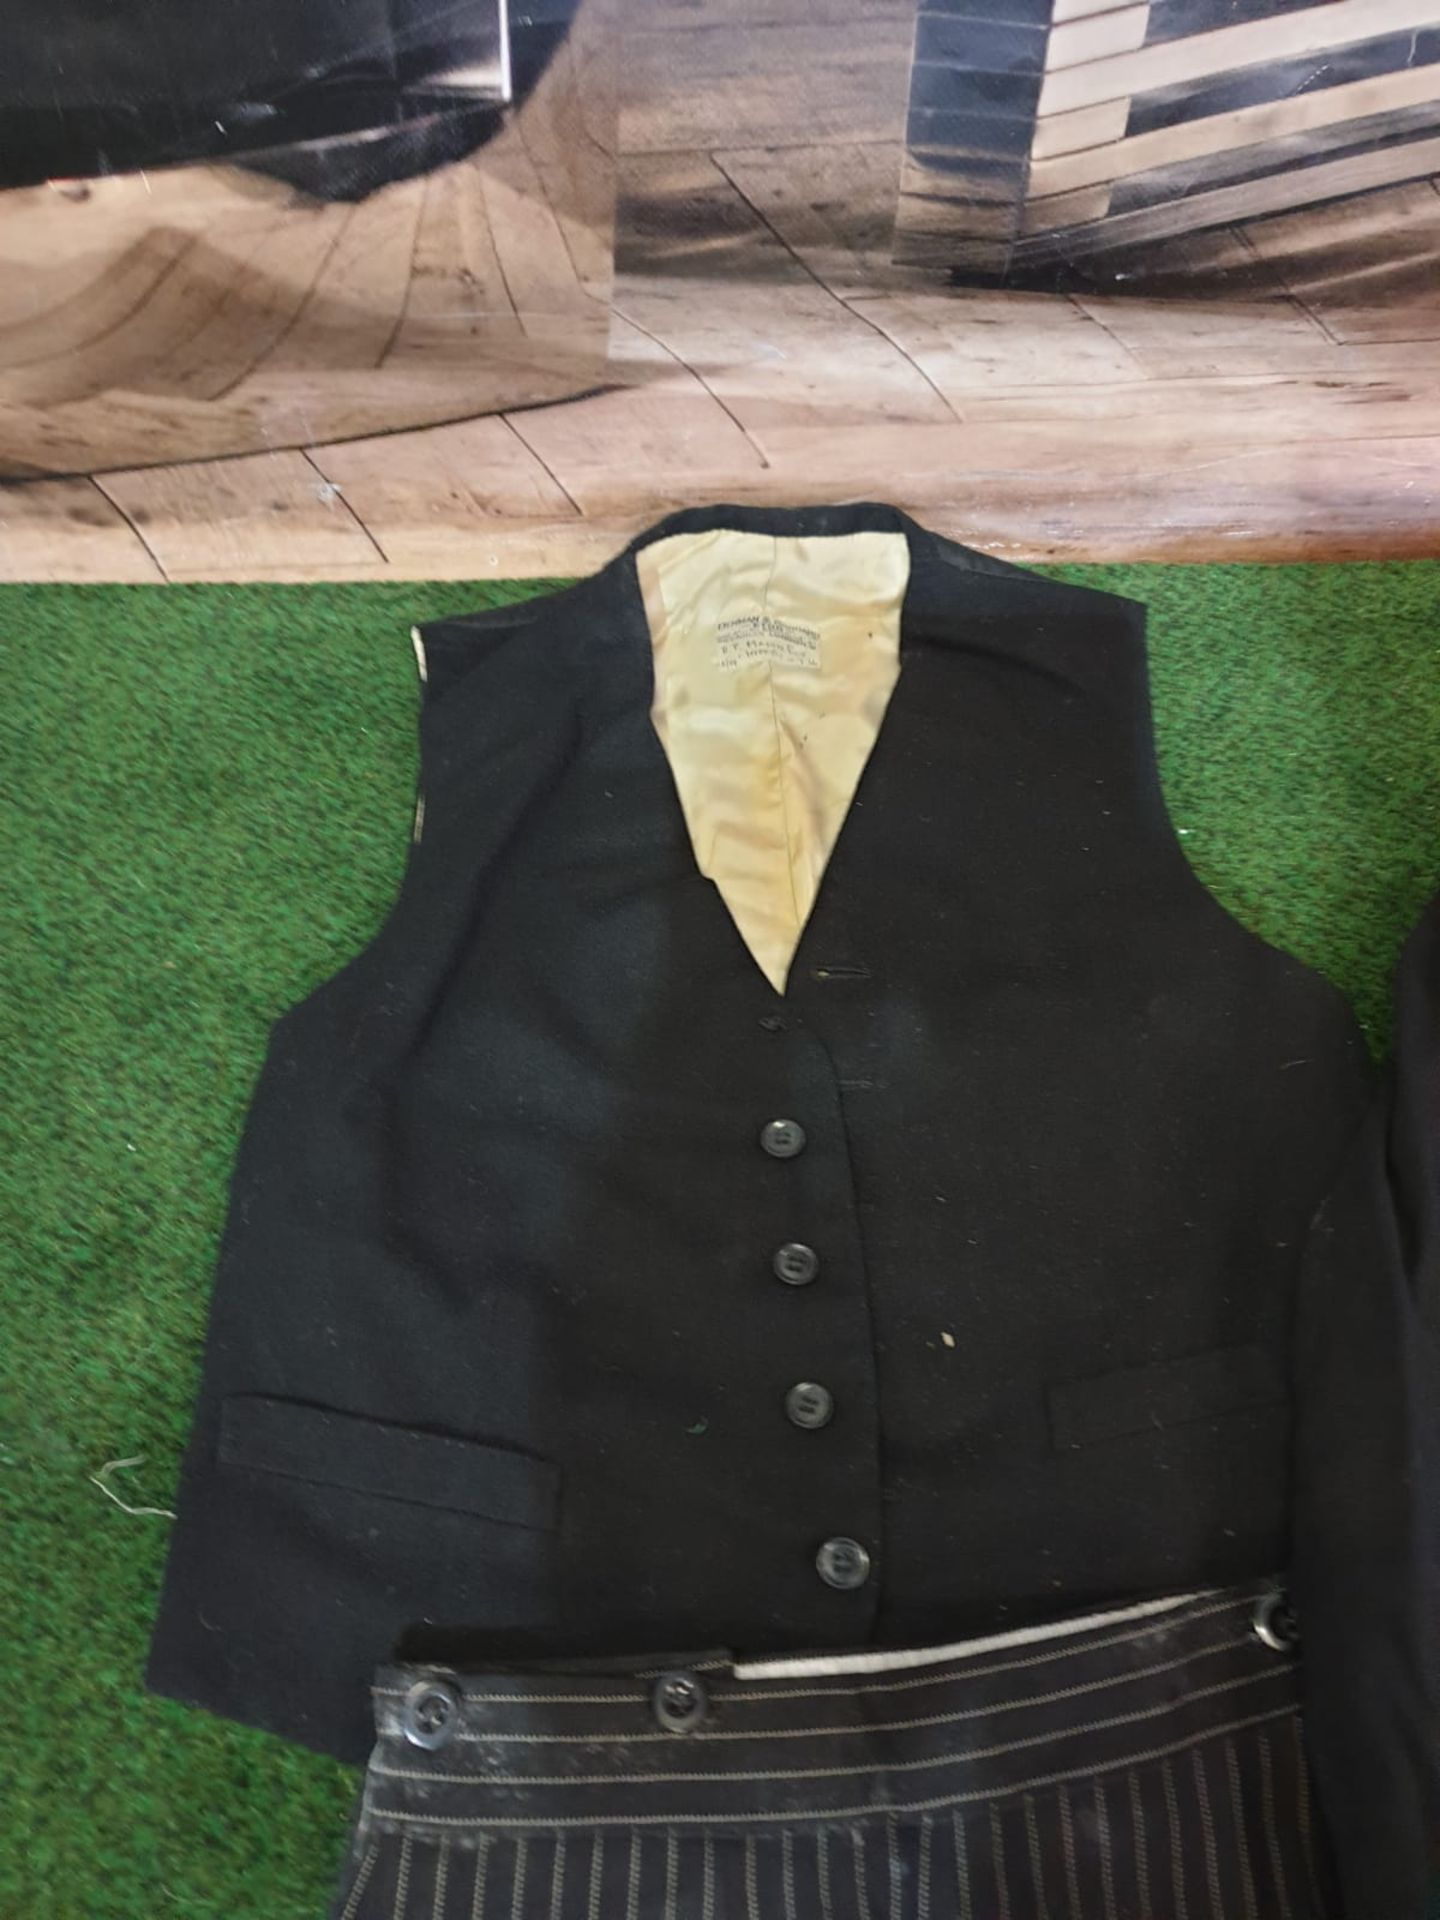 A Denman and Goddard Ltd 3 piece Eton suit consists of morning tailcoat, 2 x waistcoats and 2 x - Image 4 of 5